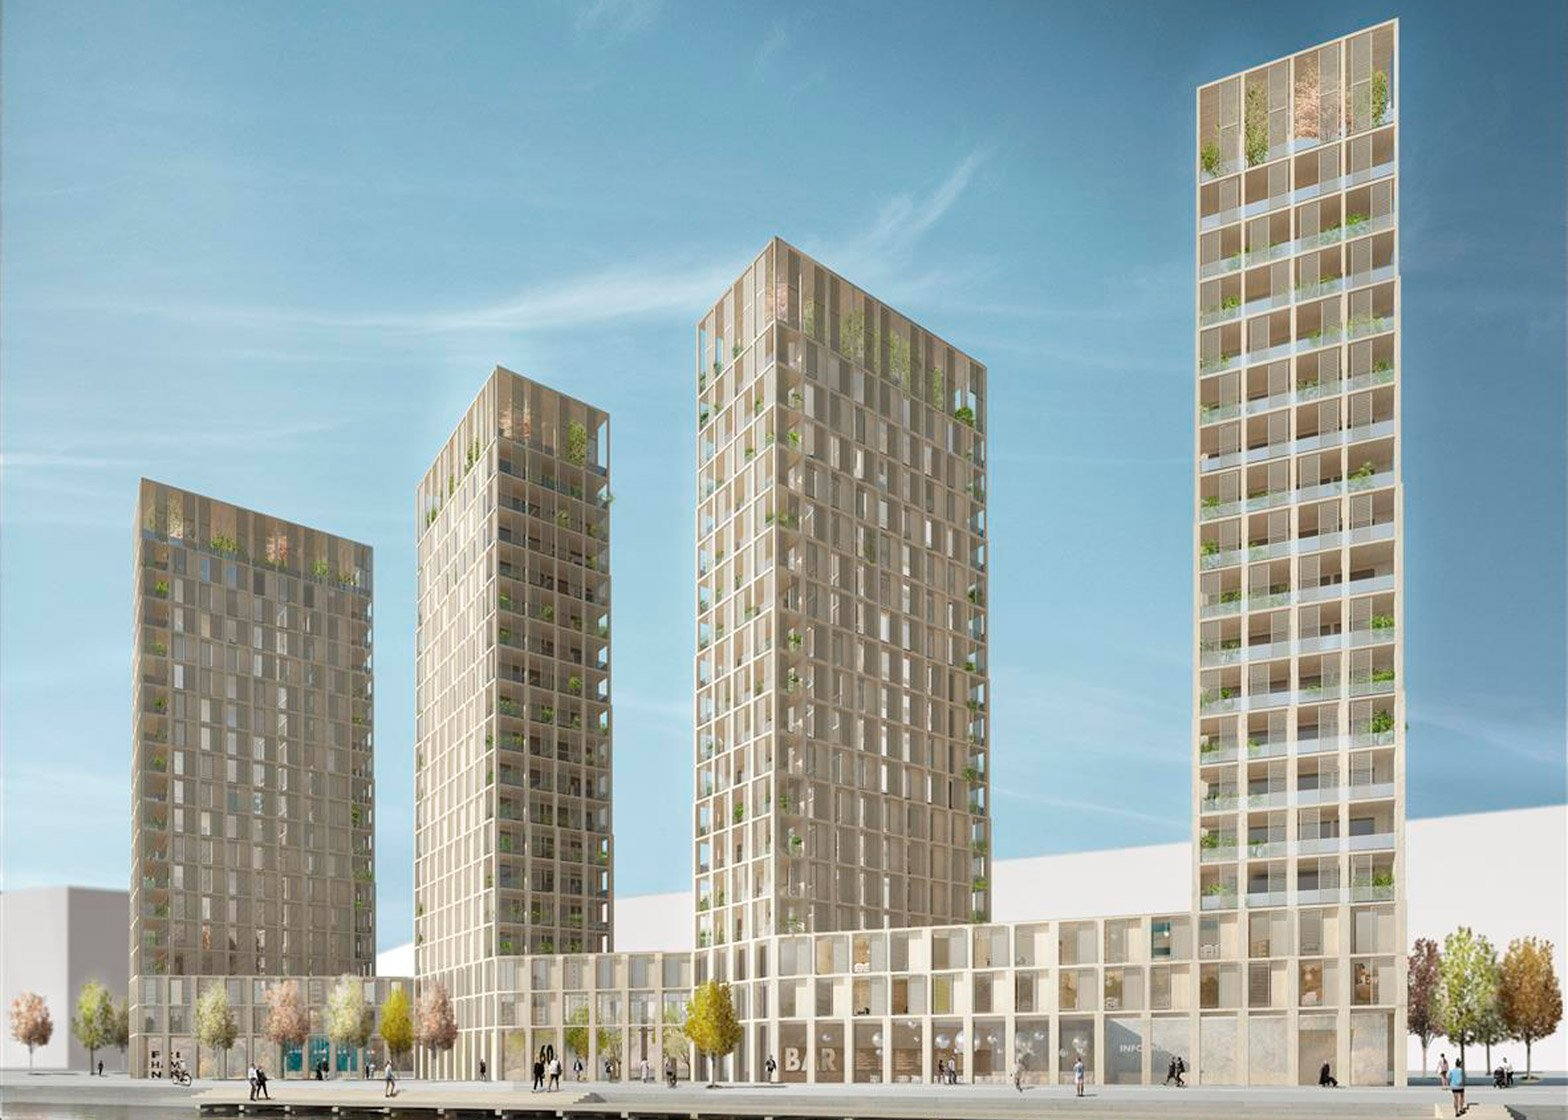 Tham & Videgård Arkitekter's Wooden Highrise apartments for Stockholm